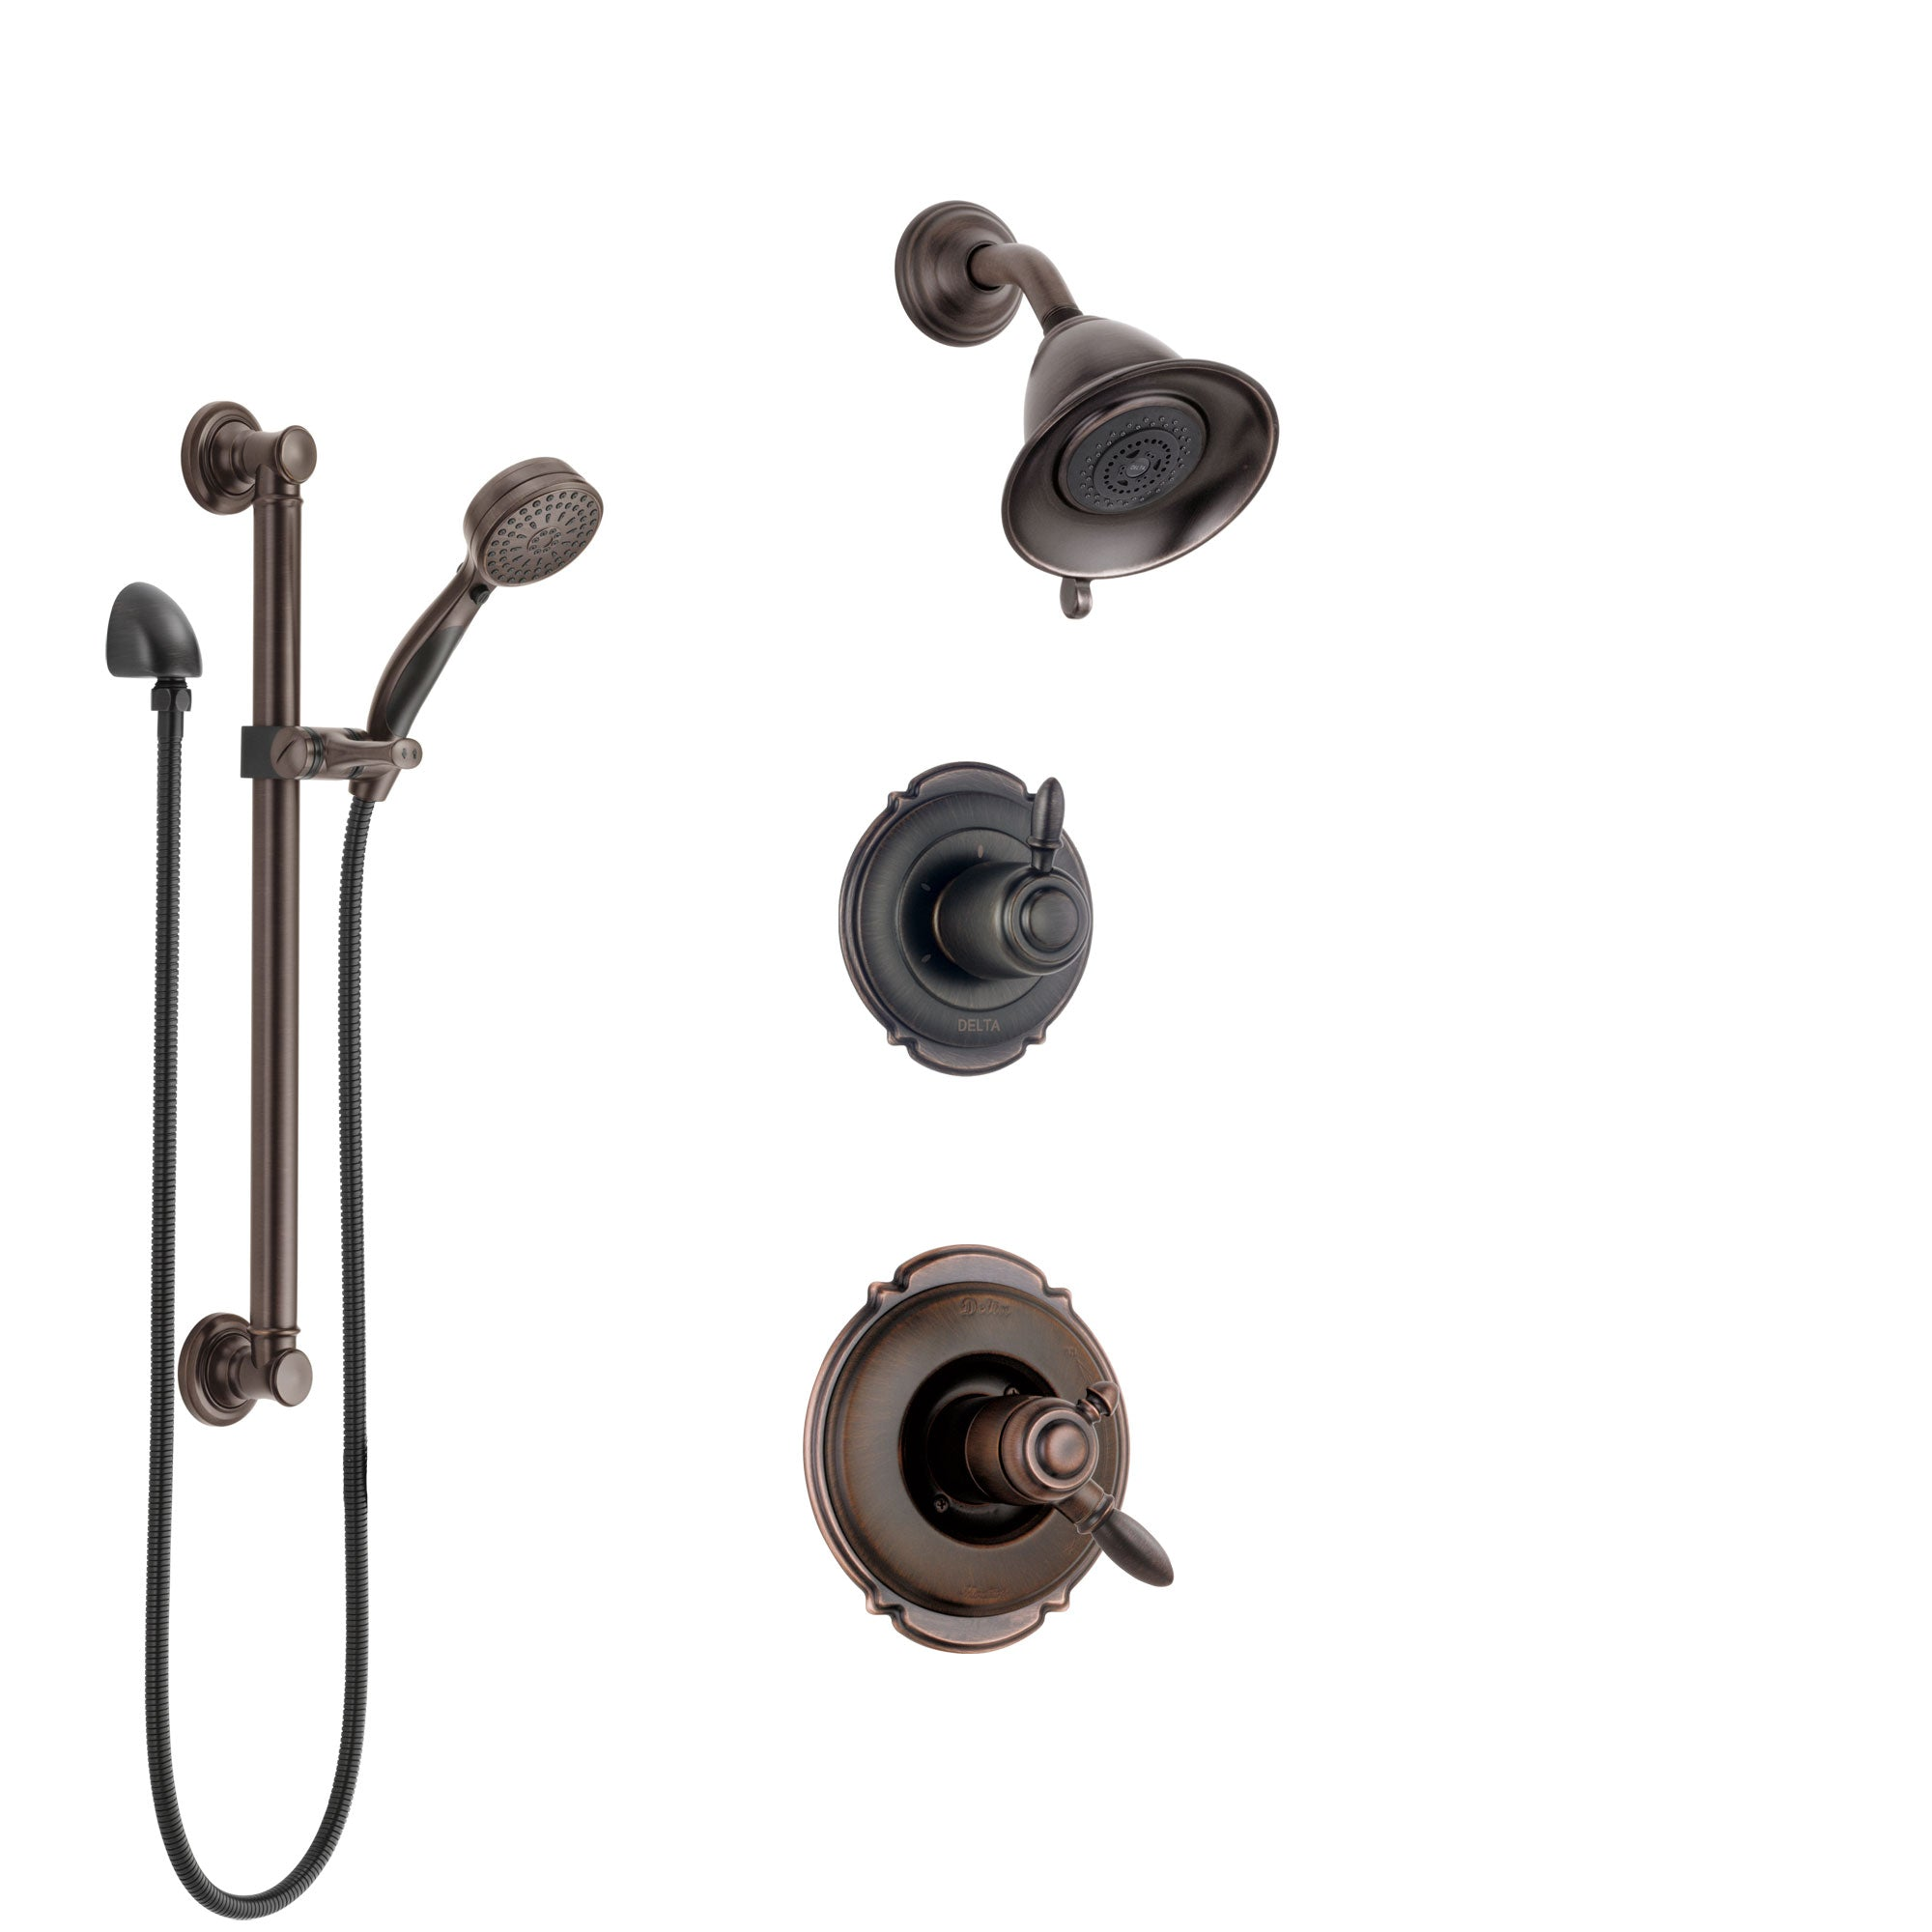 Delta Victorian Venetian Bronze Shower System with Dual Control Handle, 3-Setting Diverter, Showerhead, and Hand Shower with Grab Bar SS172551RB3